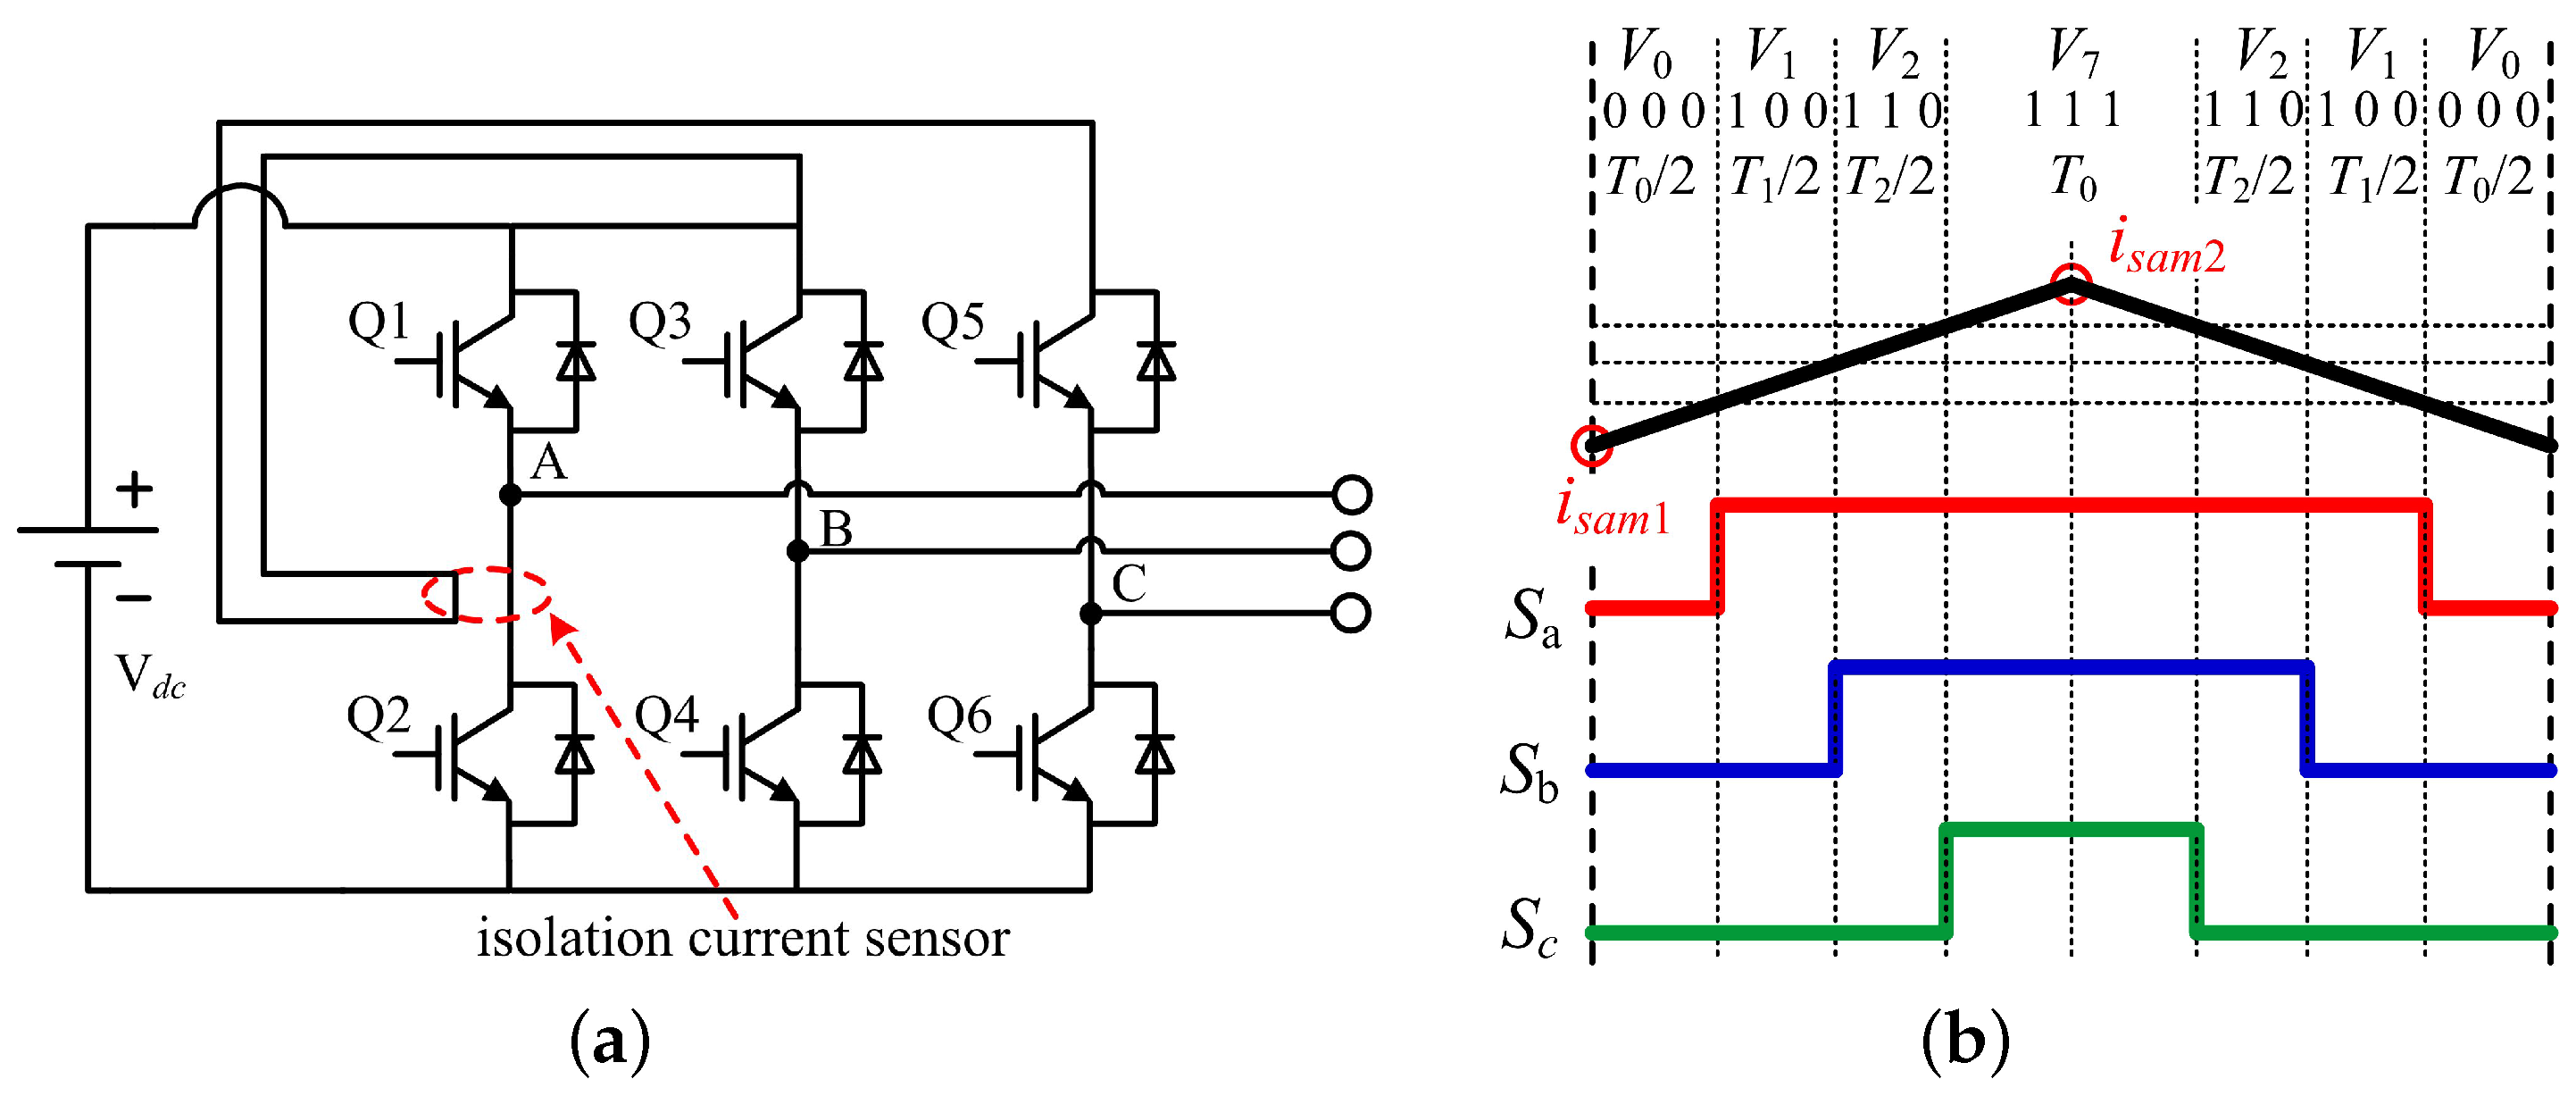 Energies | Free Full-Text | A Phase Current Reconstruction Approach on permanent magnet motor timing, permanent magnet motor repair, permanent magnet motor design diagrams, permanent magnet motor power diagram, permanent magnet motor applications, permanent magnet synchronous generator, pressure sensor wiring diagram, permanent magnet motor dimensions, permanent magnet shielding, permanent magnet motor schematic, permanent magnet stepper motor, permanent magnet electric motors diagram, electric motors wiring diagram, dayton motors wiring diagram,